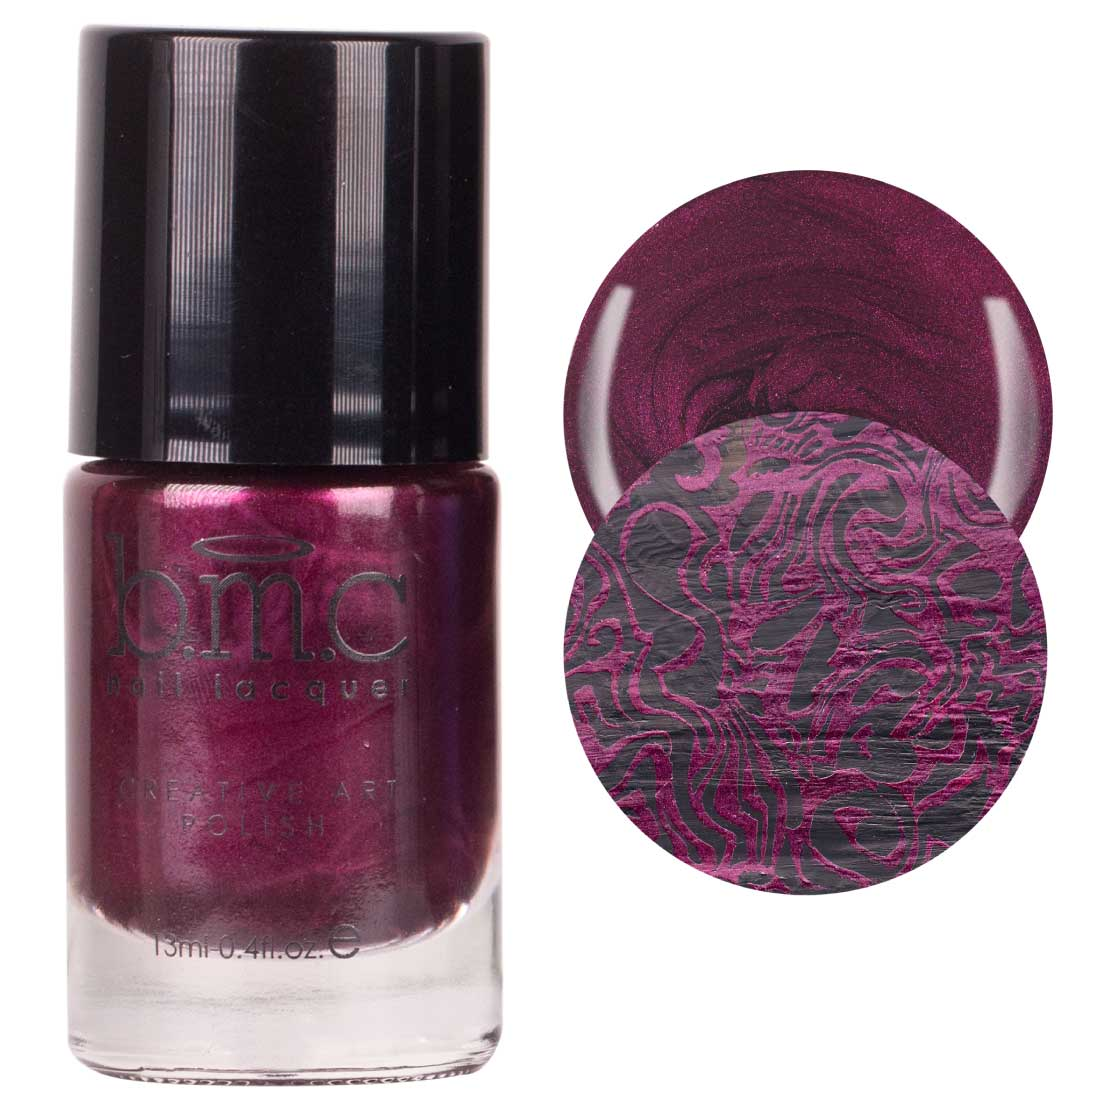 BMC Grimm's Nightfall Metallic, Shimmery, Dark Duochrome Halloween Fall Fashion Highly-Pigmented Creative Nail Art Stamping Polish Full Collection - Various Colors